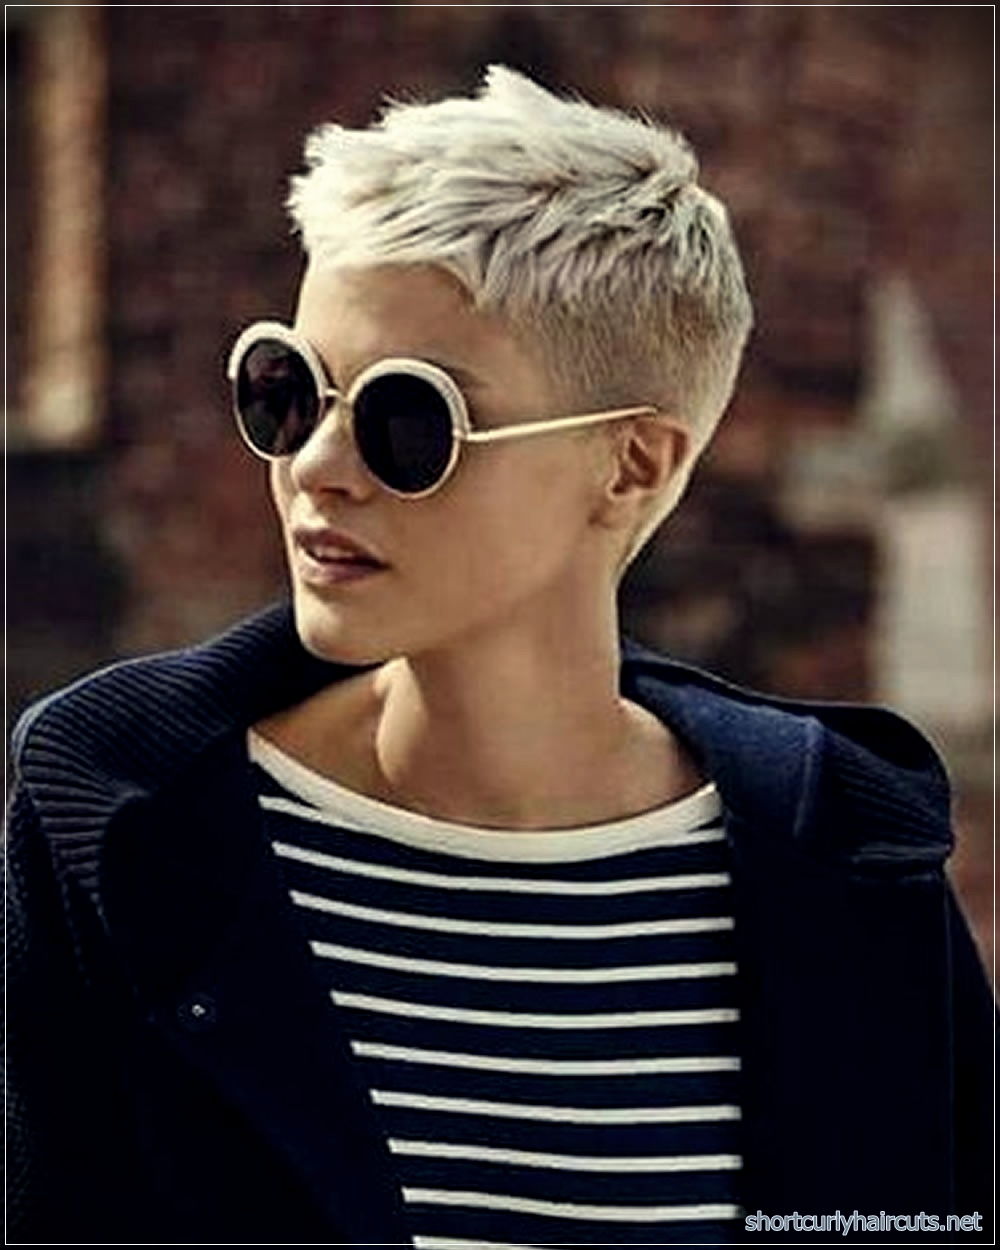 2018 Hairstyles for Women that are Trending Currently in The Fashion World - 2018 hairstyles for women 7